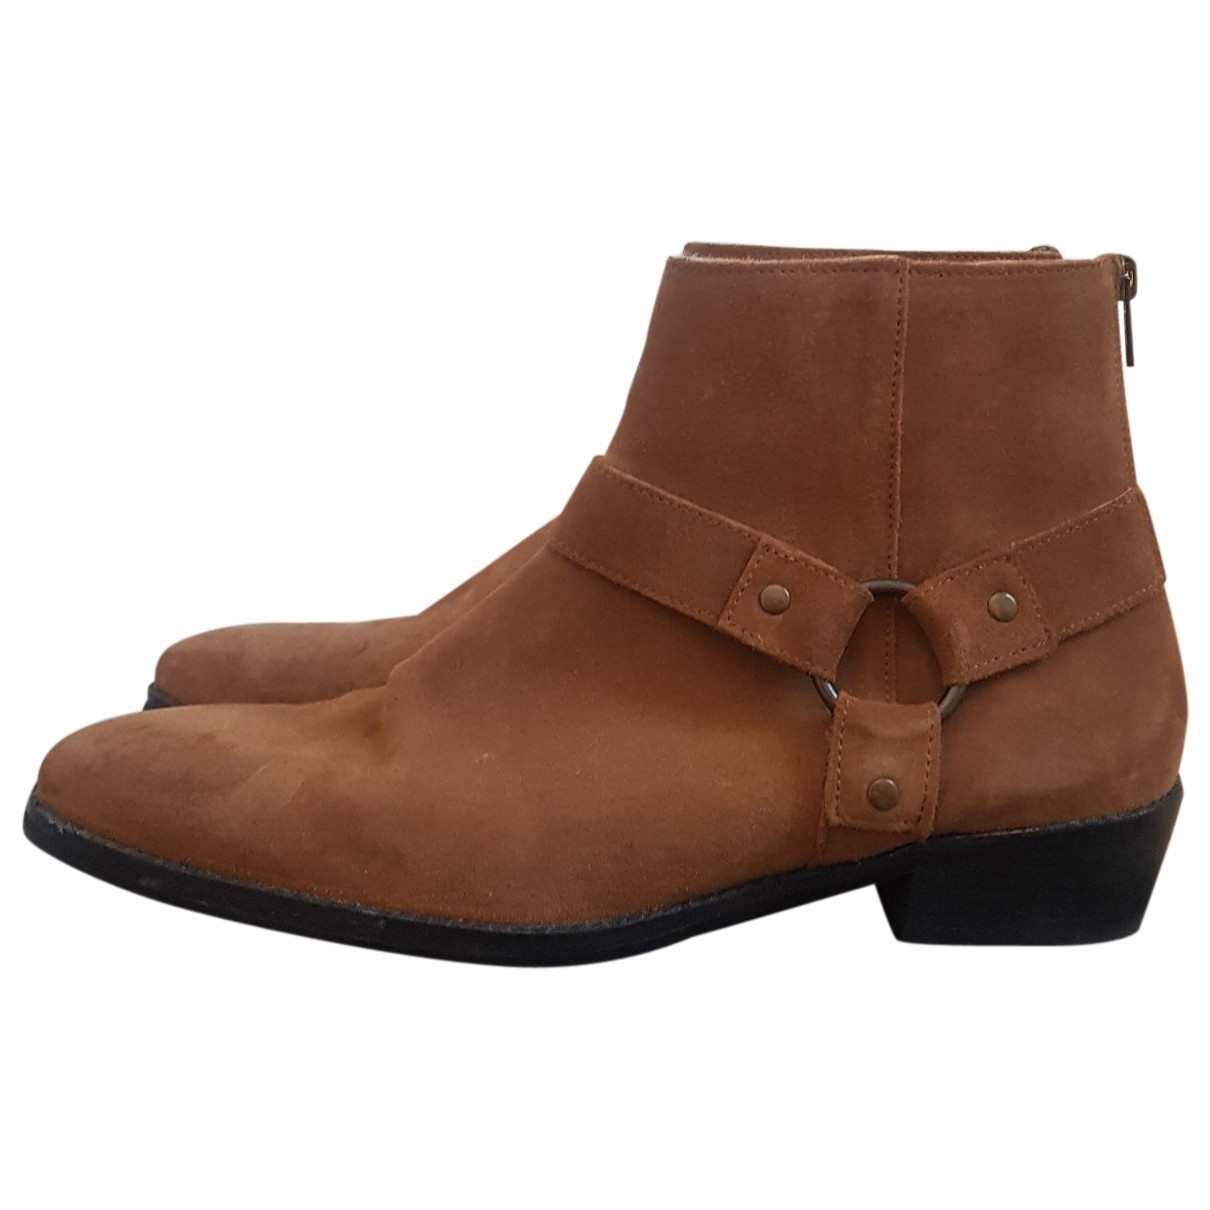 Asos \N Brown Suede Boots for Men 10.5 US